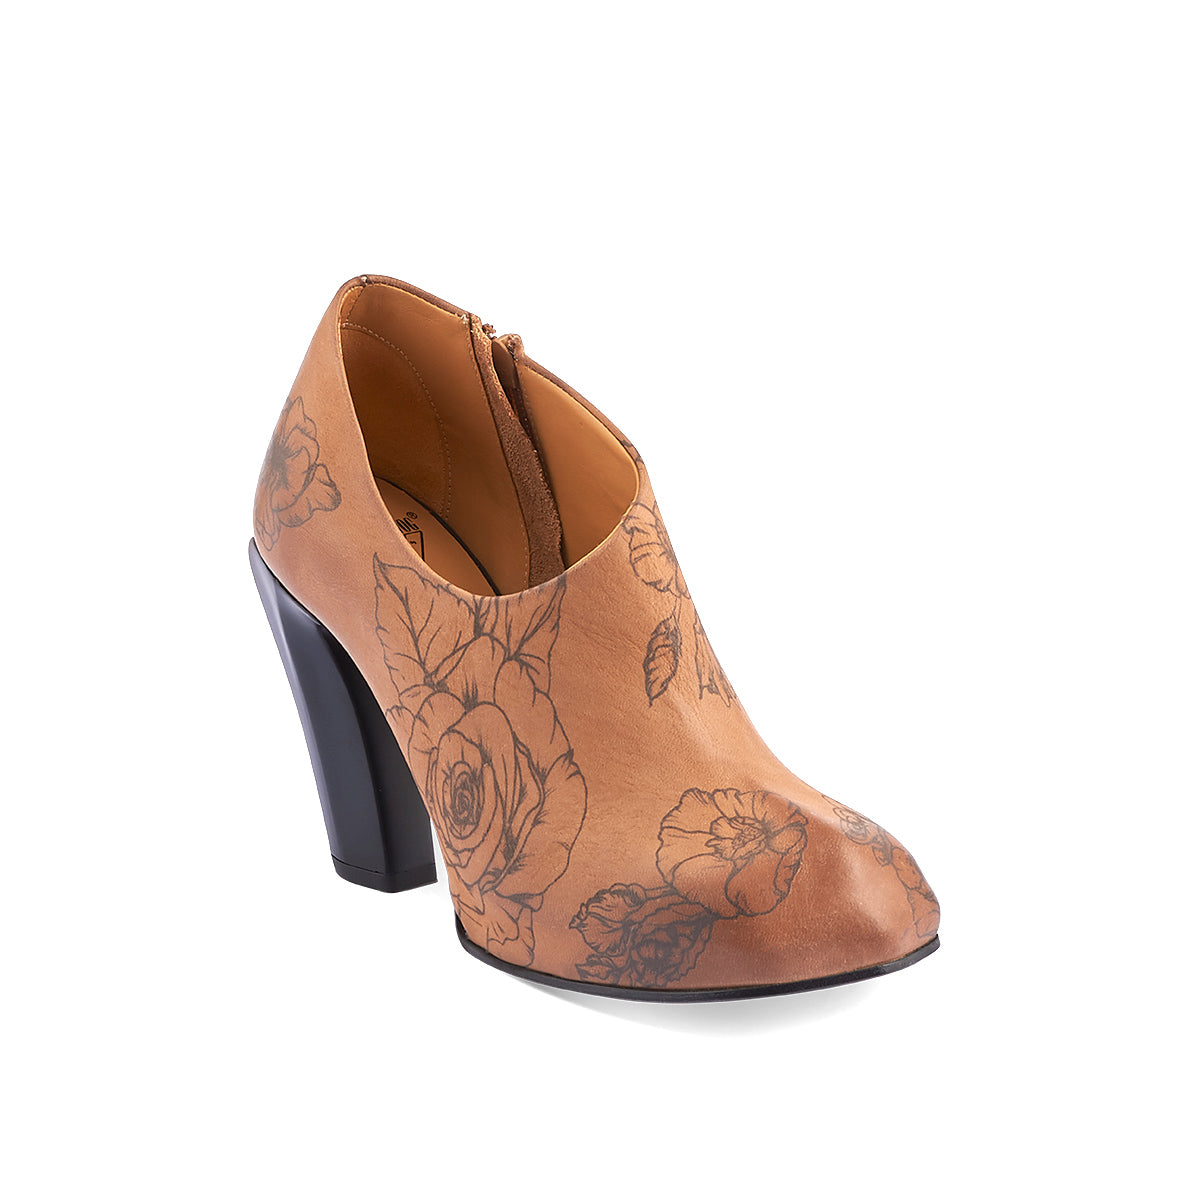 Designed with an asymmetric toe, the new Sable from John Fluevog has beautiful lines and a distinctively modern look. Sable has a concealed, leather-wrapped 2cm platform underfoot for extra stability, while the smooth printed leather upper embraces the foot and secures with a subtle inner zip.